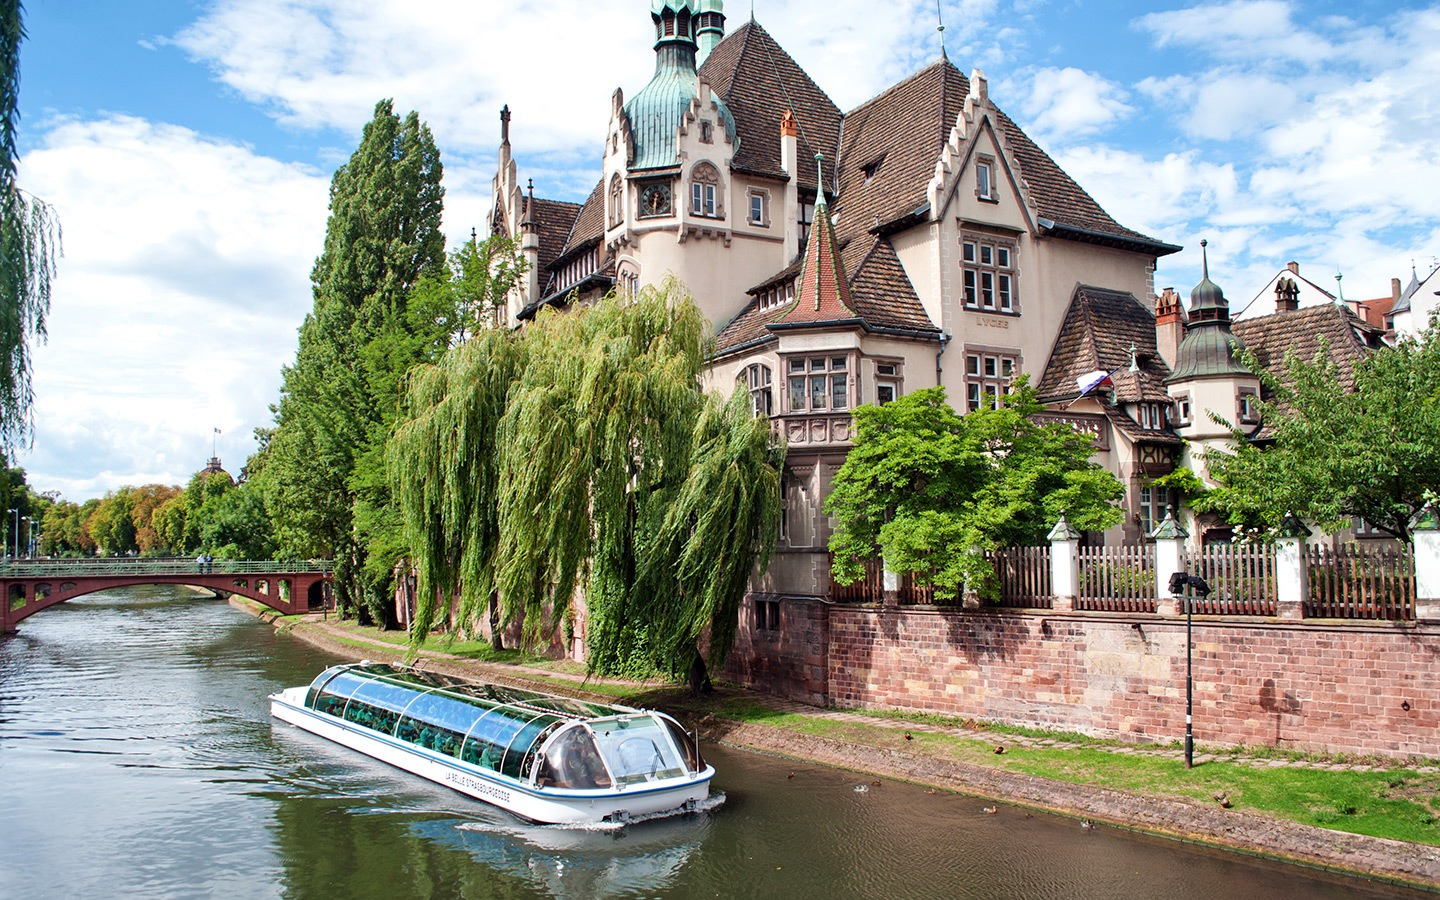 Boat trip on the canals of Strasbourg, Alsace